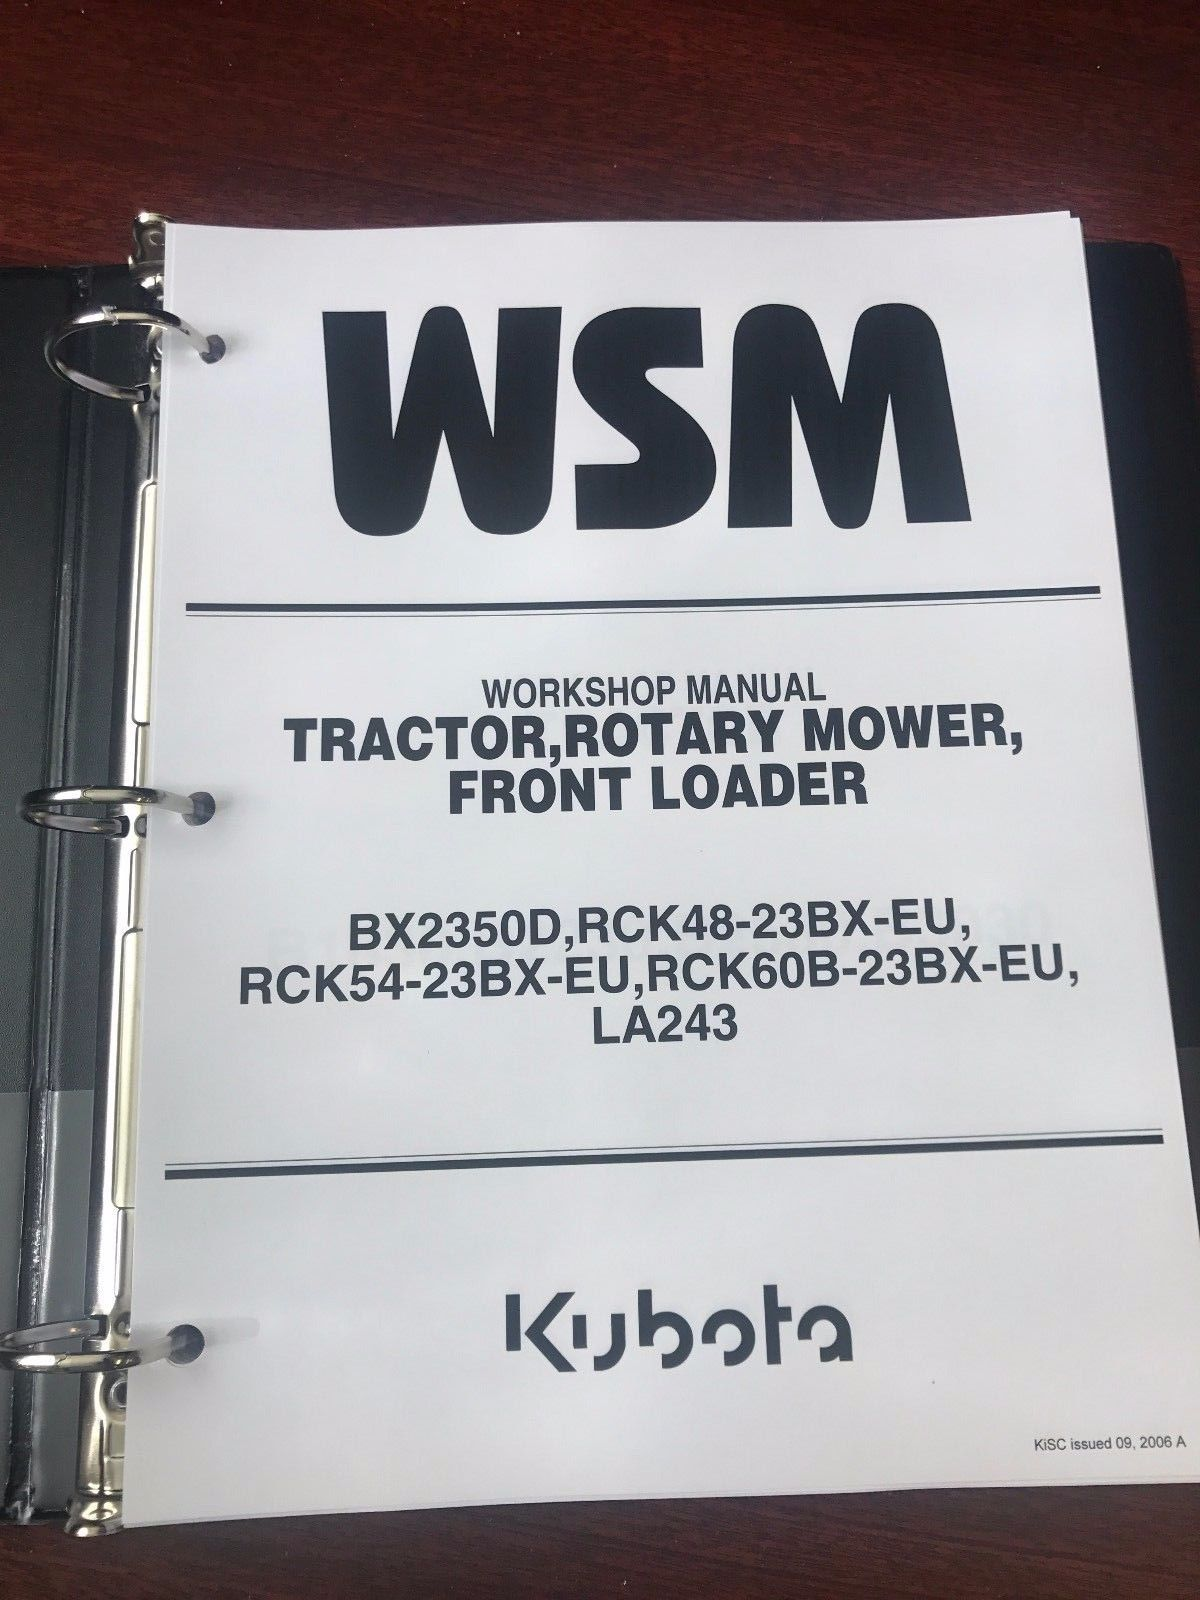 Kubota BX2350D Tractor Mower Loader Service Repair Workshop Manual - $83.00